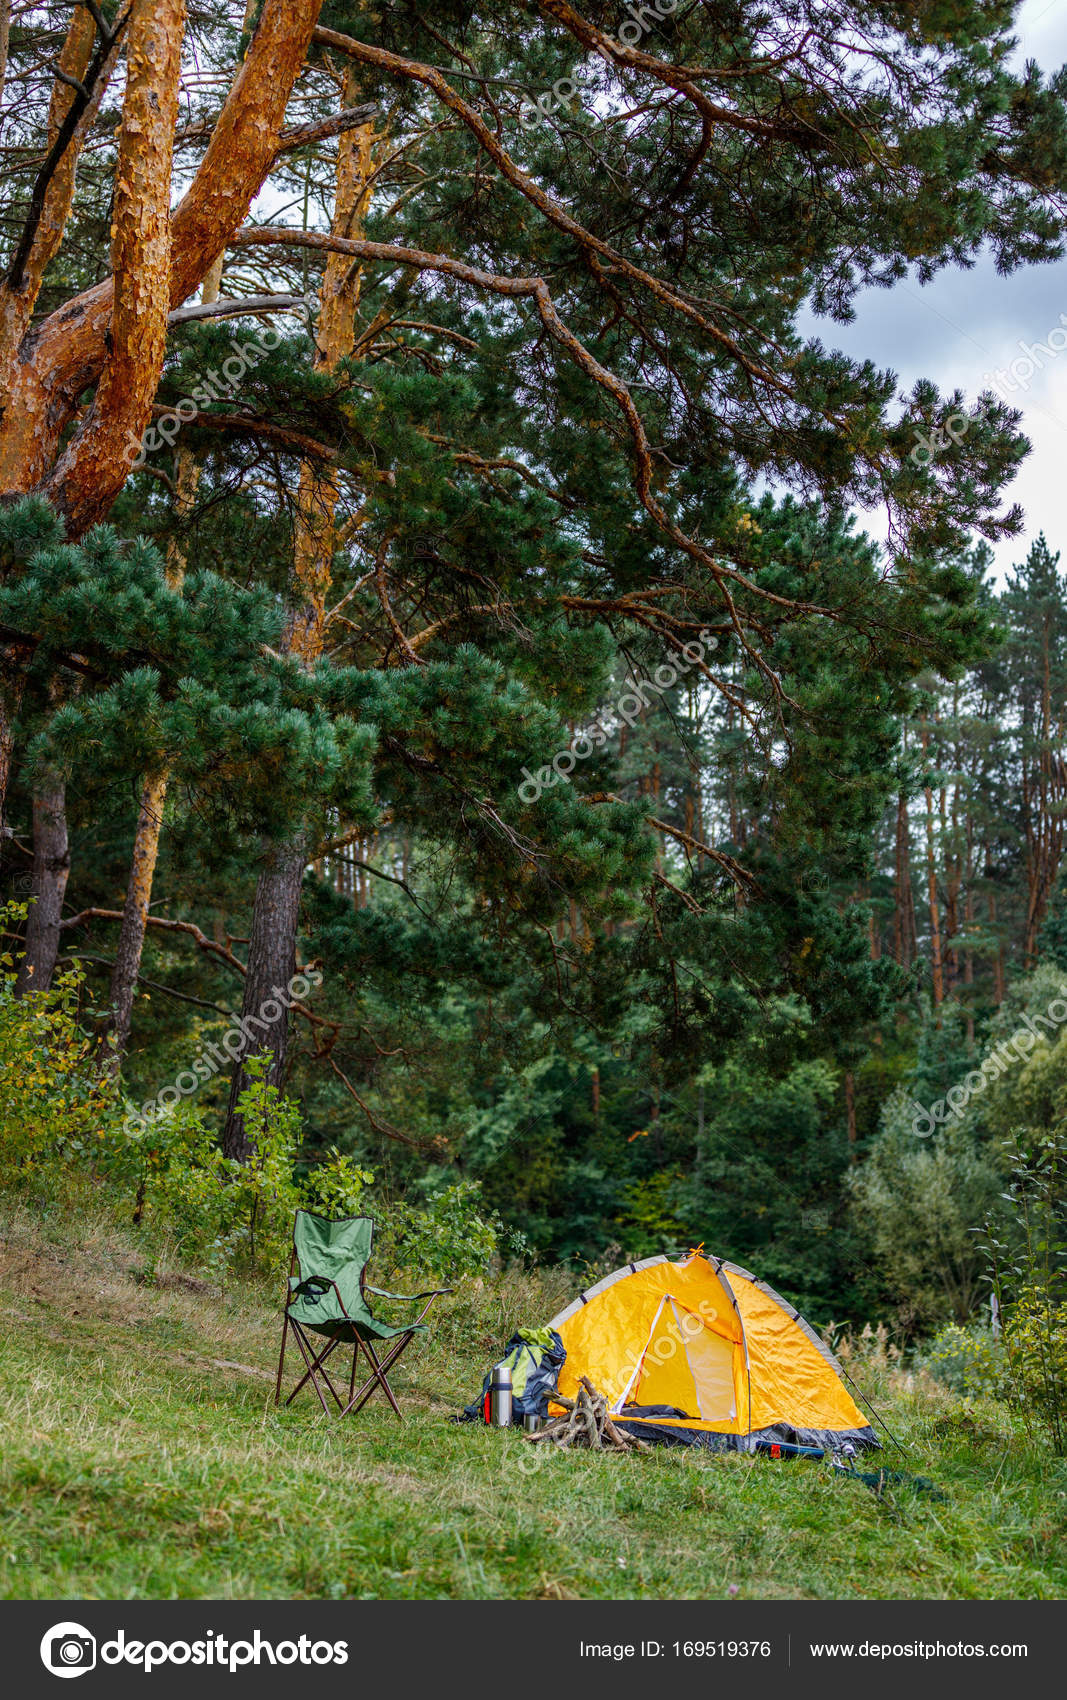 C&ing with tent in forest u2014 Stock Photo & camping with tent in forest u2014 Stock Photo © SashaKhalabuzar #169519376